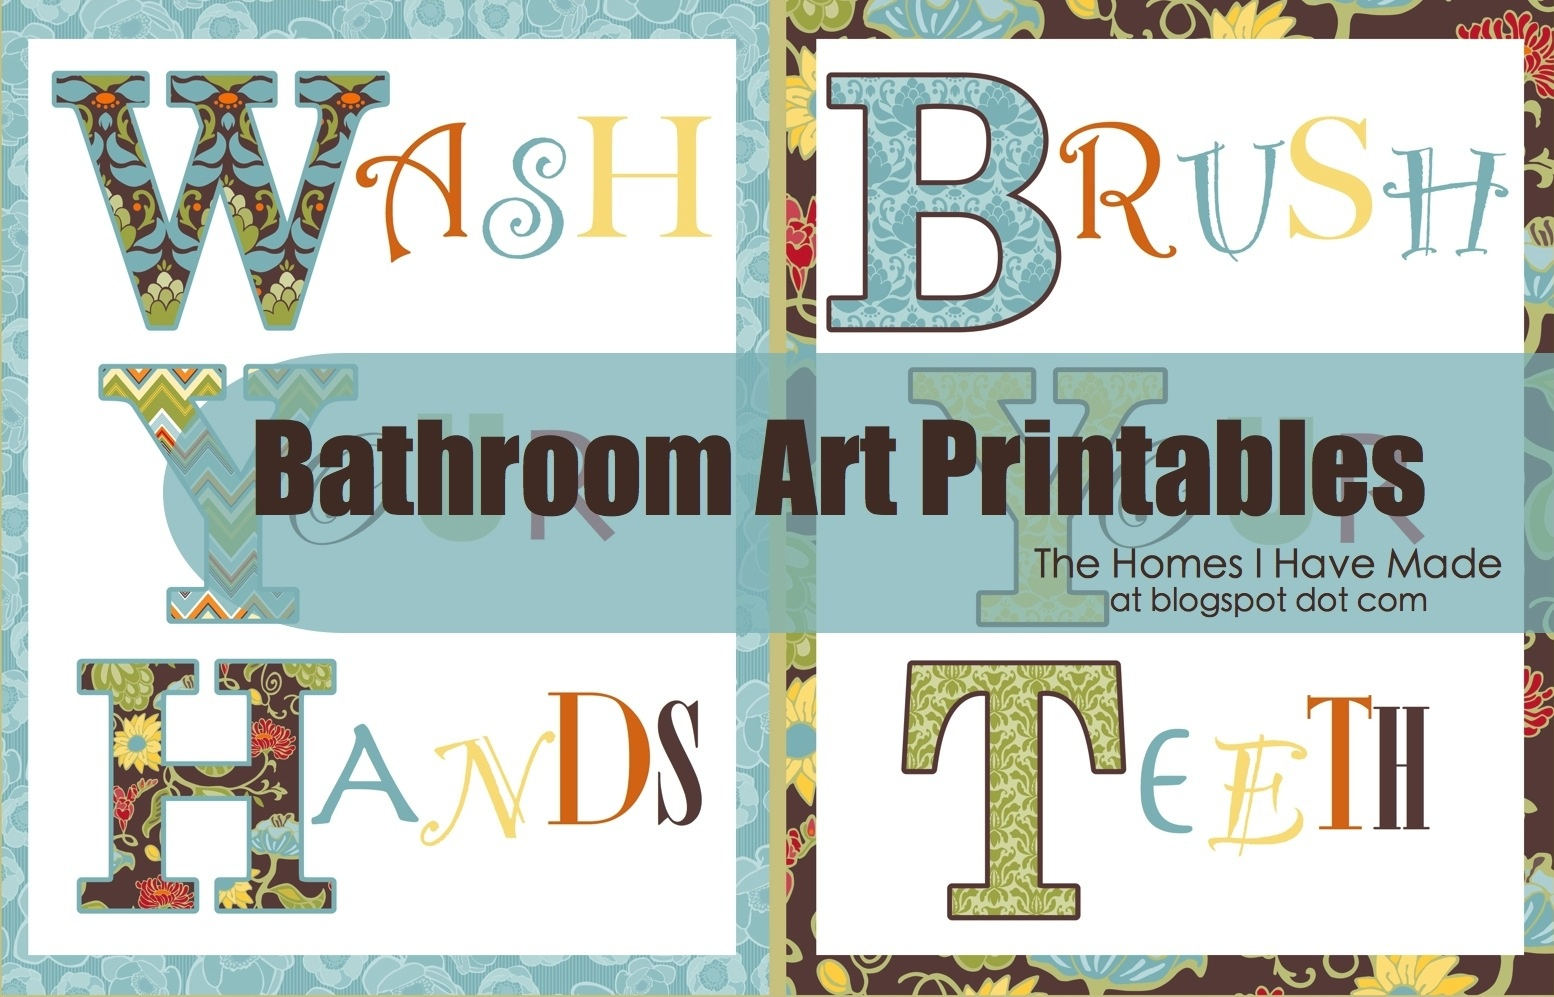 Bathroom Wall Art Printables The Homes I Have Made, Printable Wall - Free Printable Wall Art For Bathroom